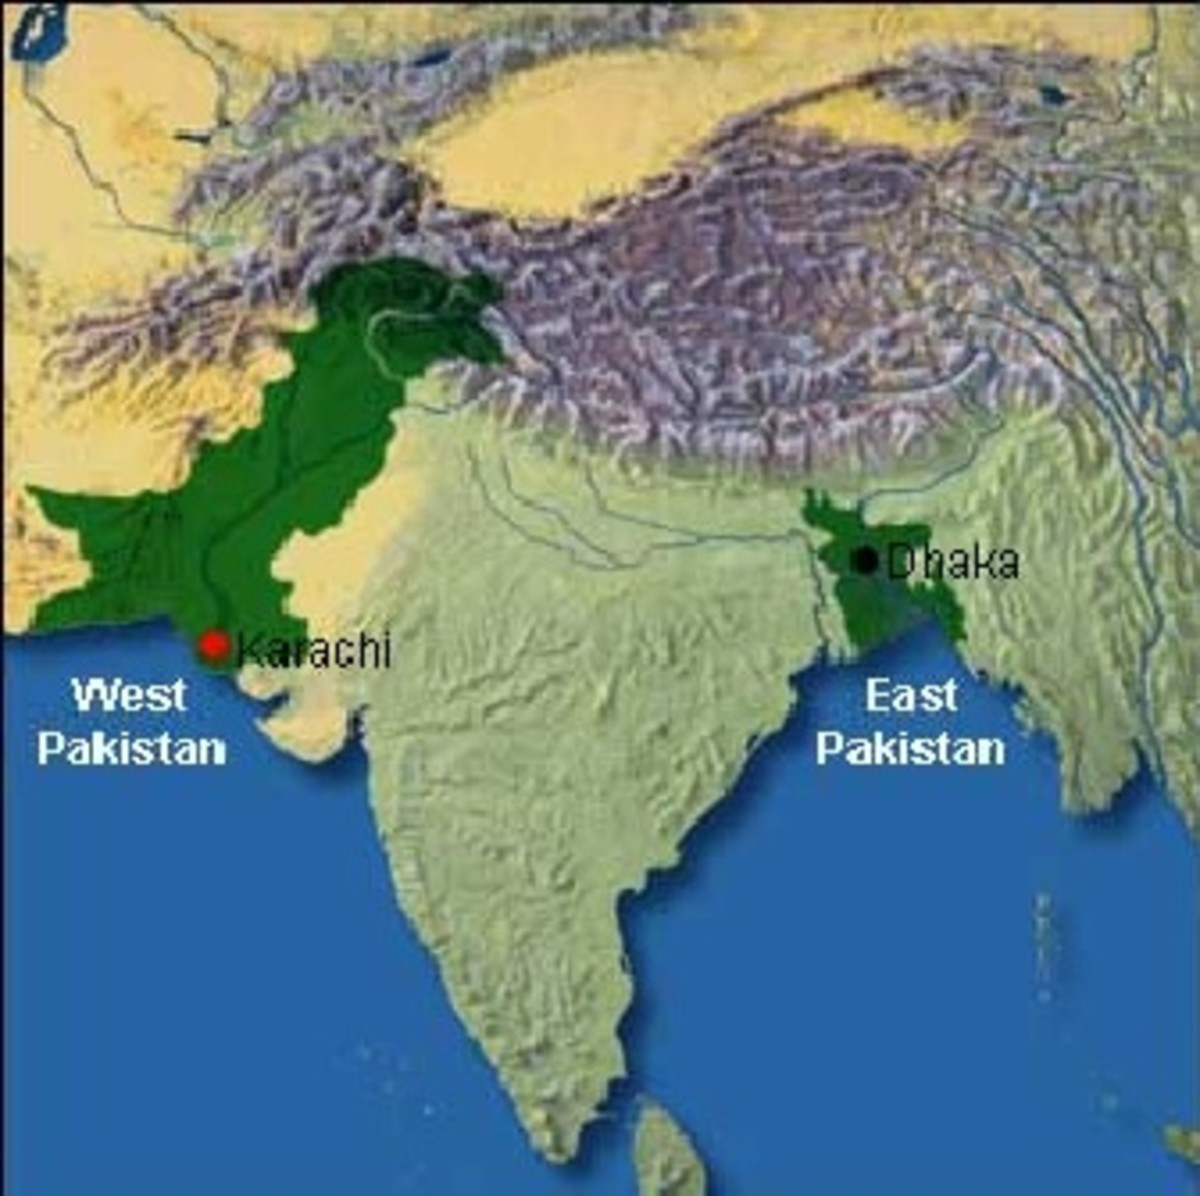 Geographical location of the former East Pakistan. (Kashmir region remains a disputed area.)